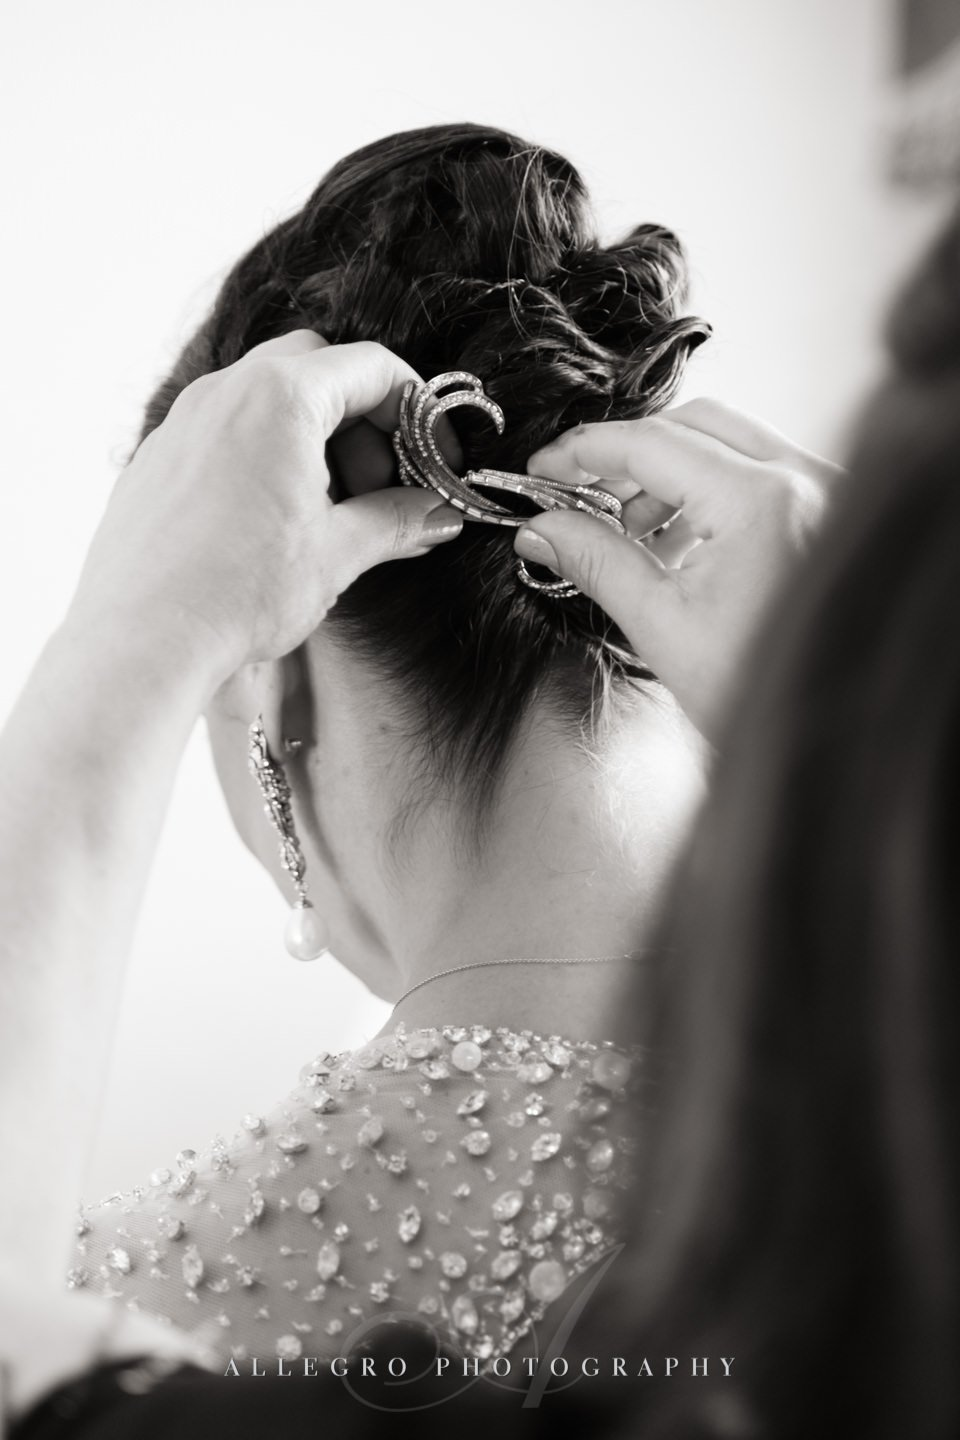 bridal hair- photo by allegro photography